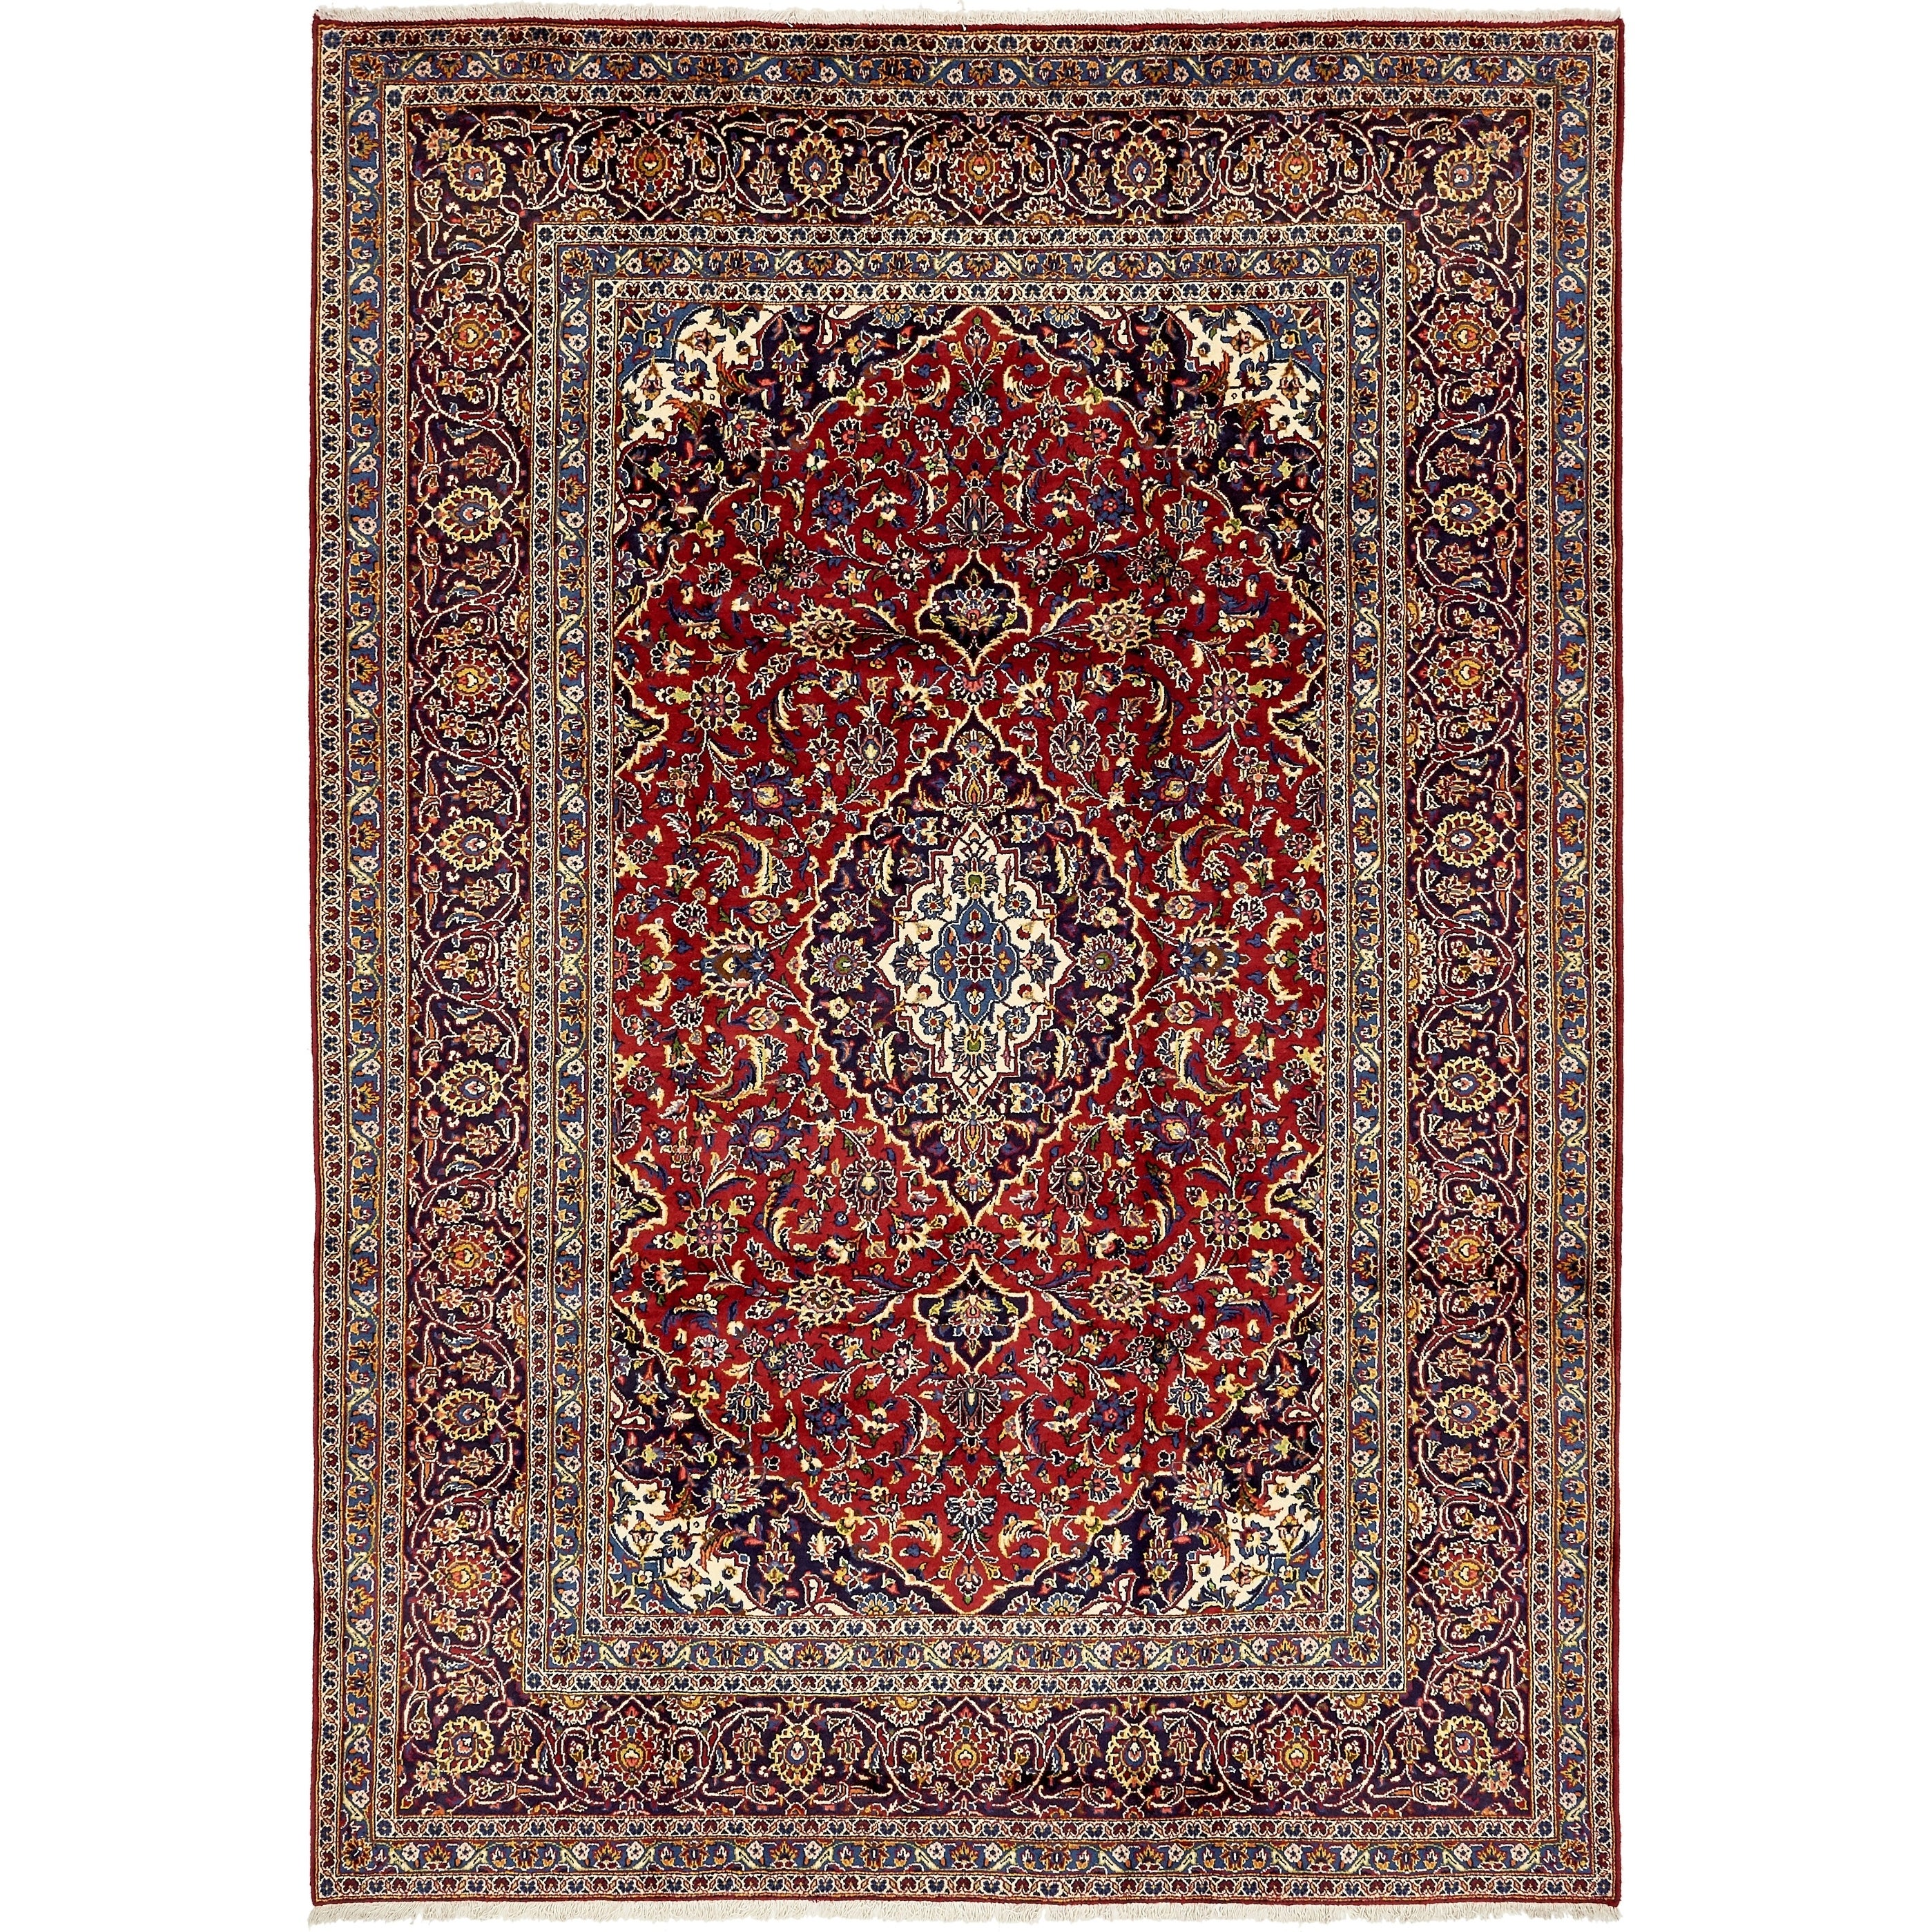 Hand Knotted Kashan Semi Antique Wool Area Rug - 7 10 x 11 2 (Red - 7 10 x 11 2)